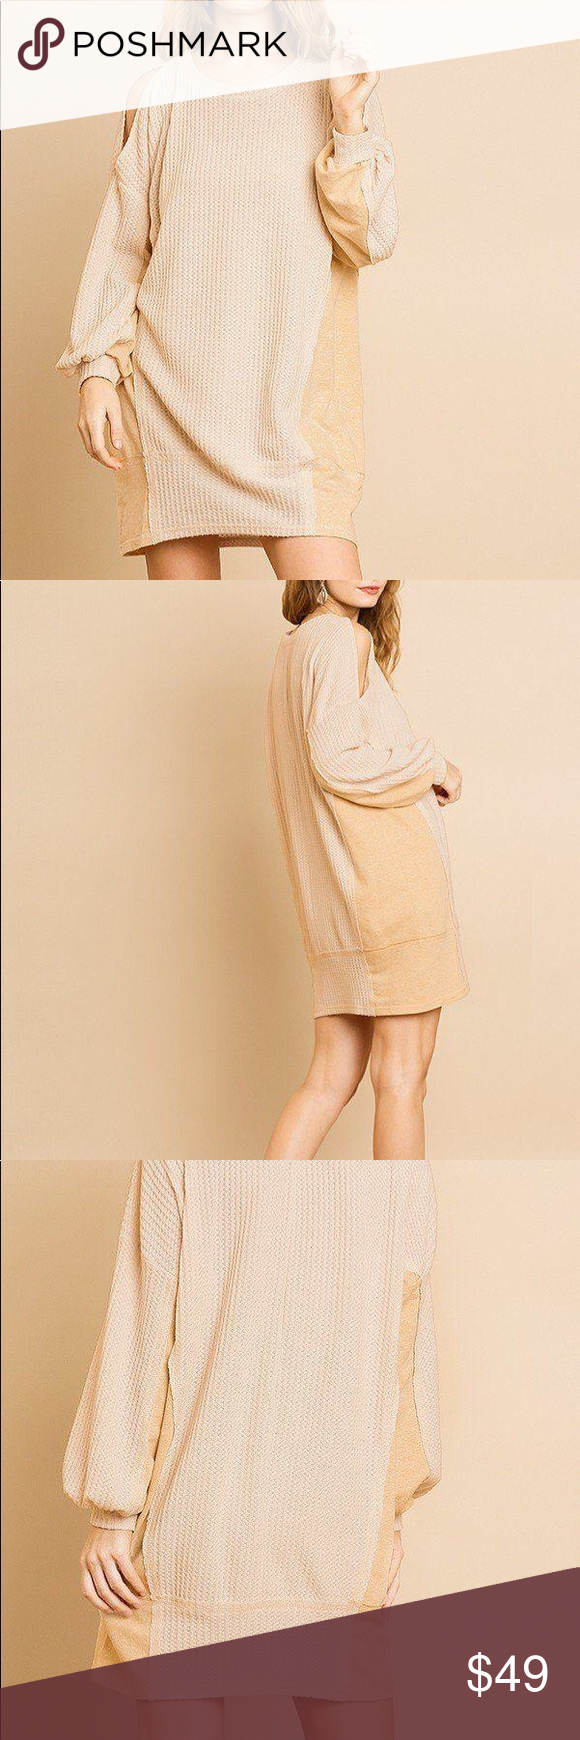 Long Sleeve Waffle Knit Dress In Oatmeal This Dress Is So Effortlessly Chic It Would Look Adorable With A Felt Hat Knit Dress Clothes Design Waffle Knit [ 1740 x 580 Pixel ]